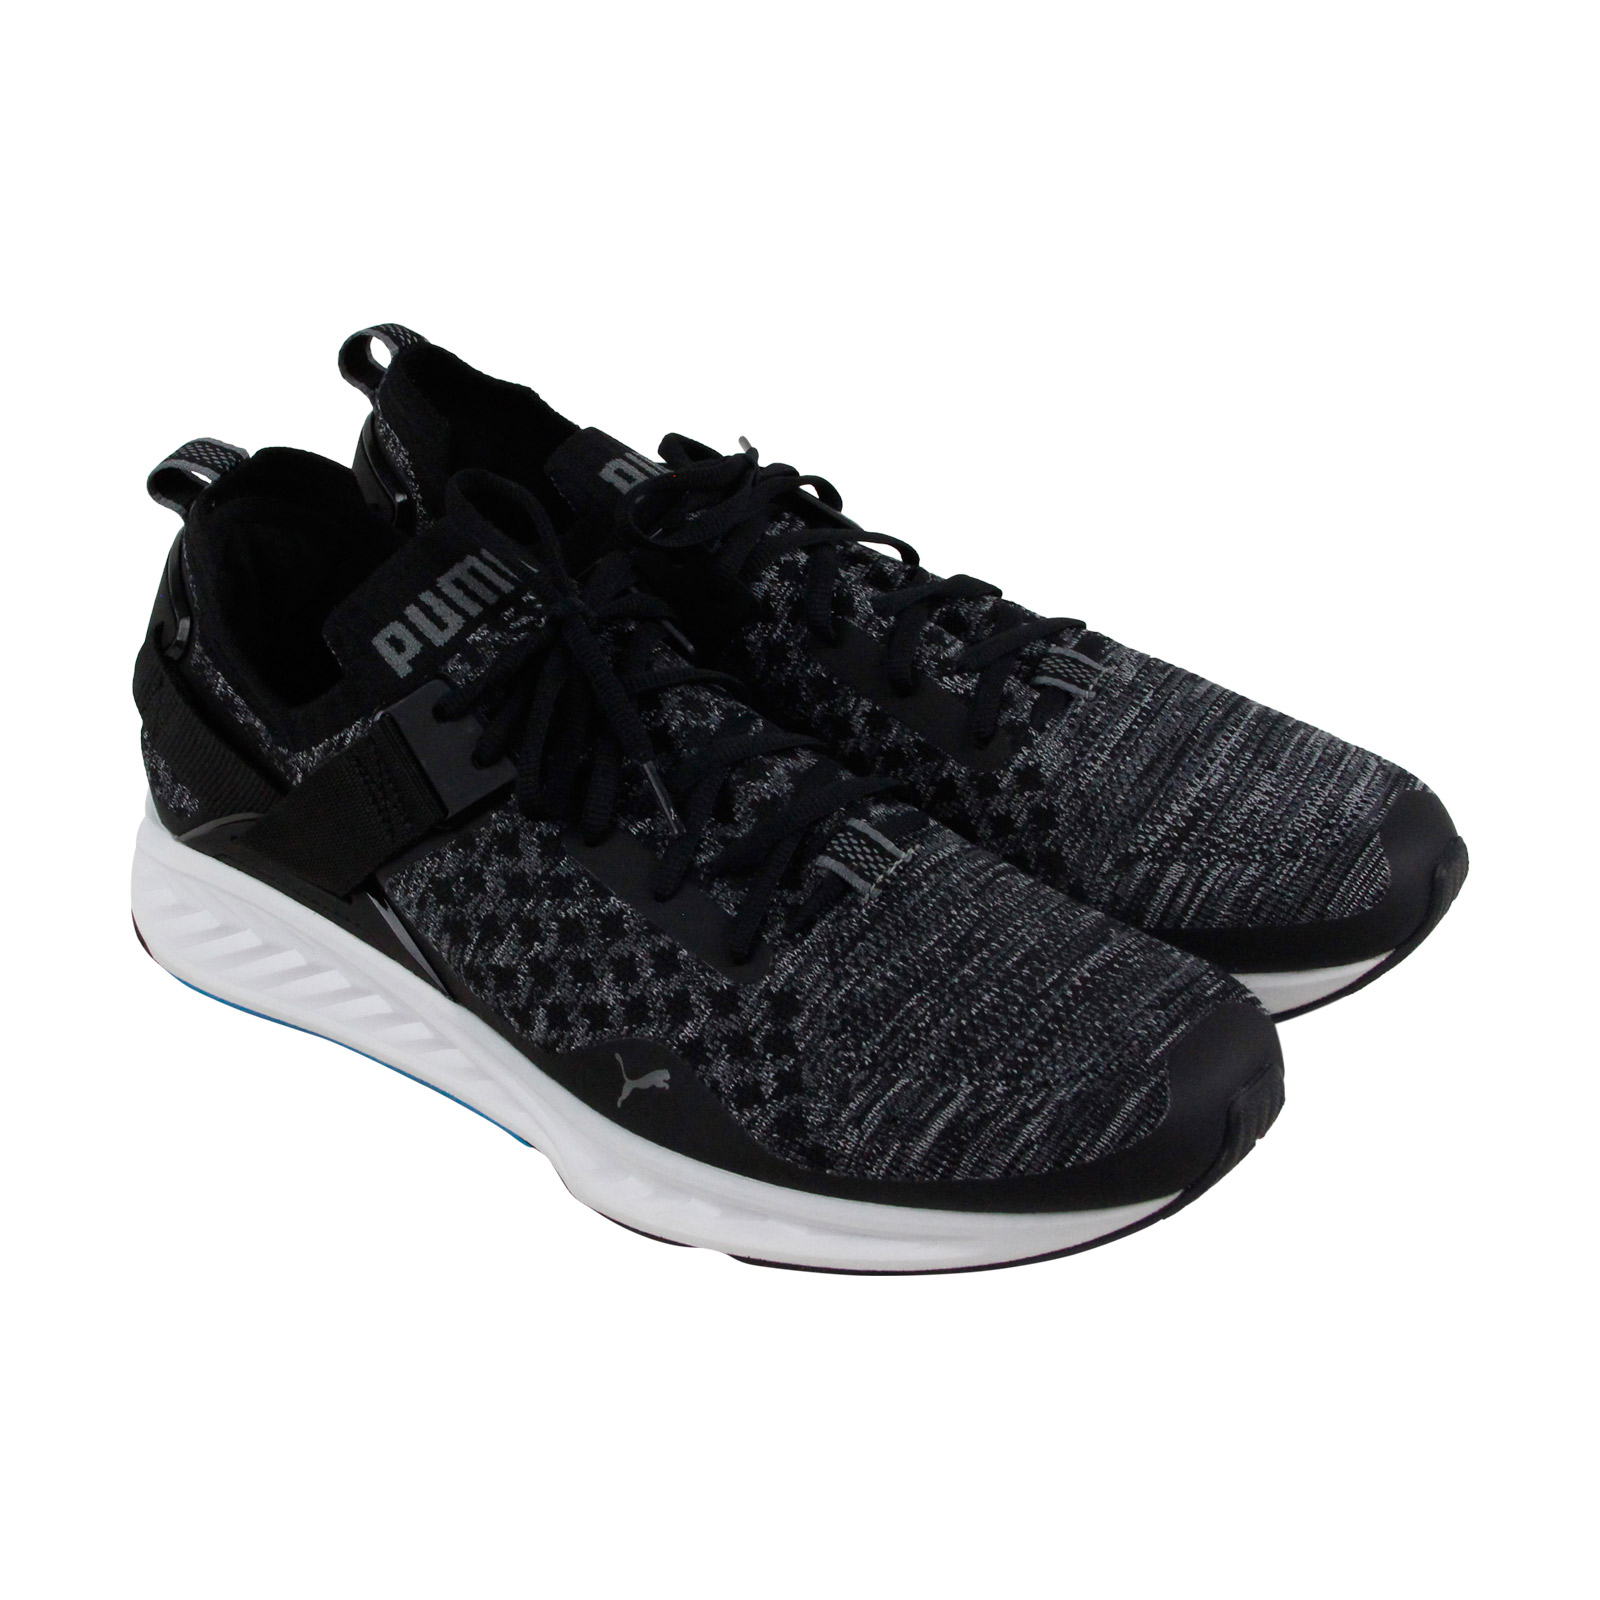 db862e88abf7 Chargement de l image en cours Puma-Ignite-Evoknit-Lo-Mens -Black-Textile-Athletic-